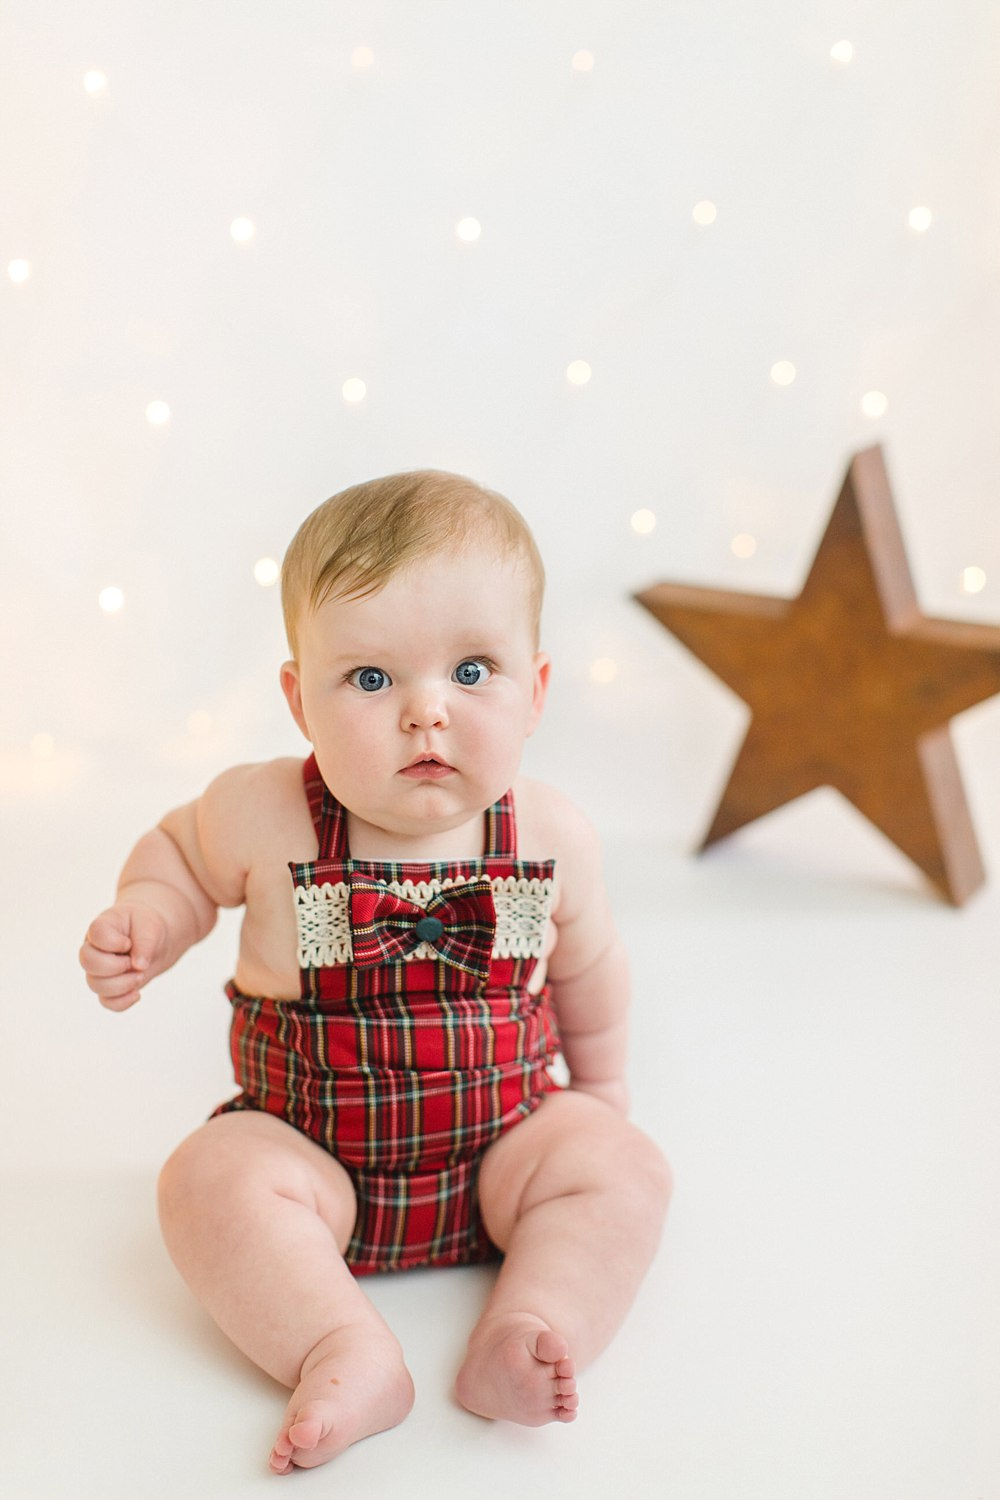 Baby Photographers Glasgow,Christmas mini baby sessions,Christmas mini sessions Glasgow,The Gibsons,baby photographer glasgow,baby photos glasgow,baby portraits glasgow,